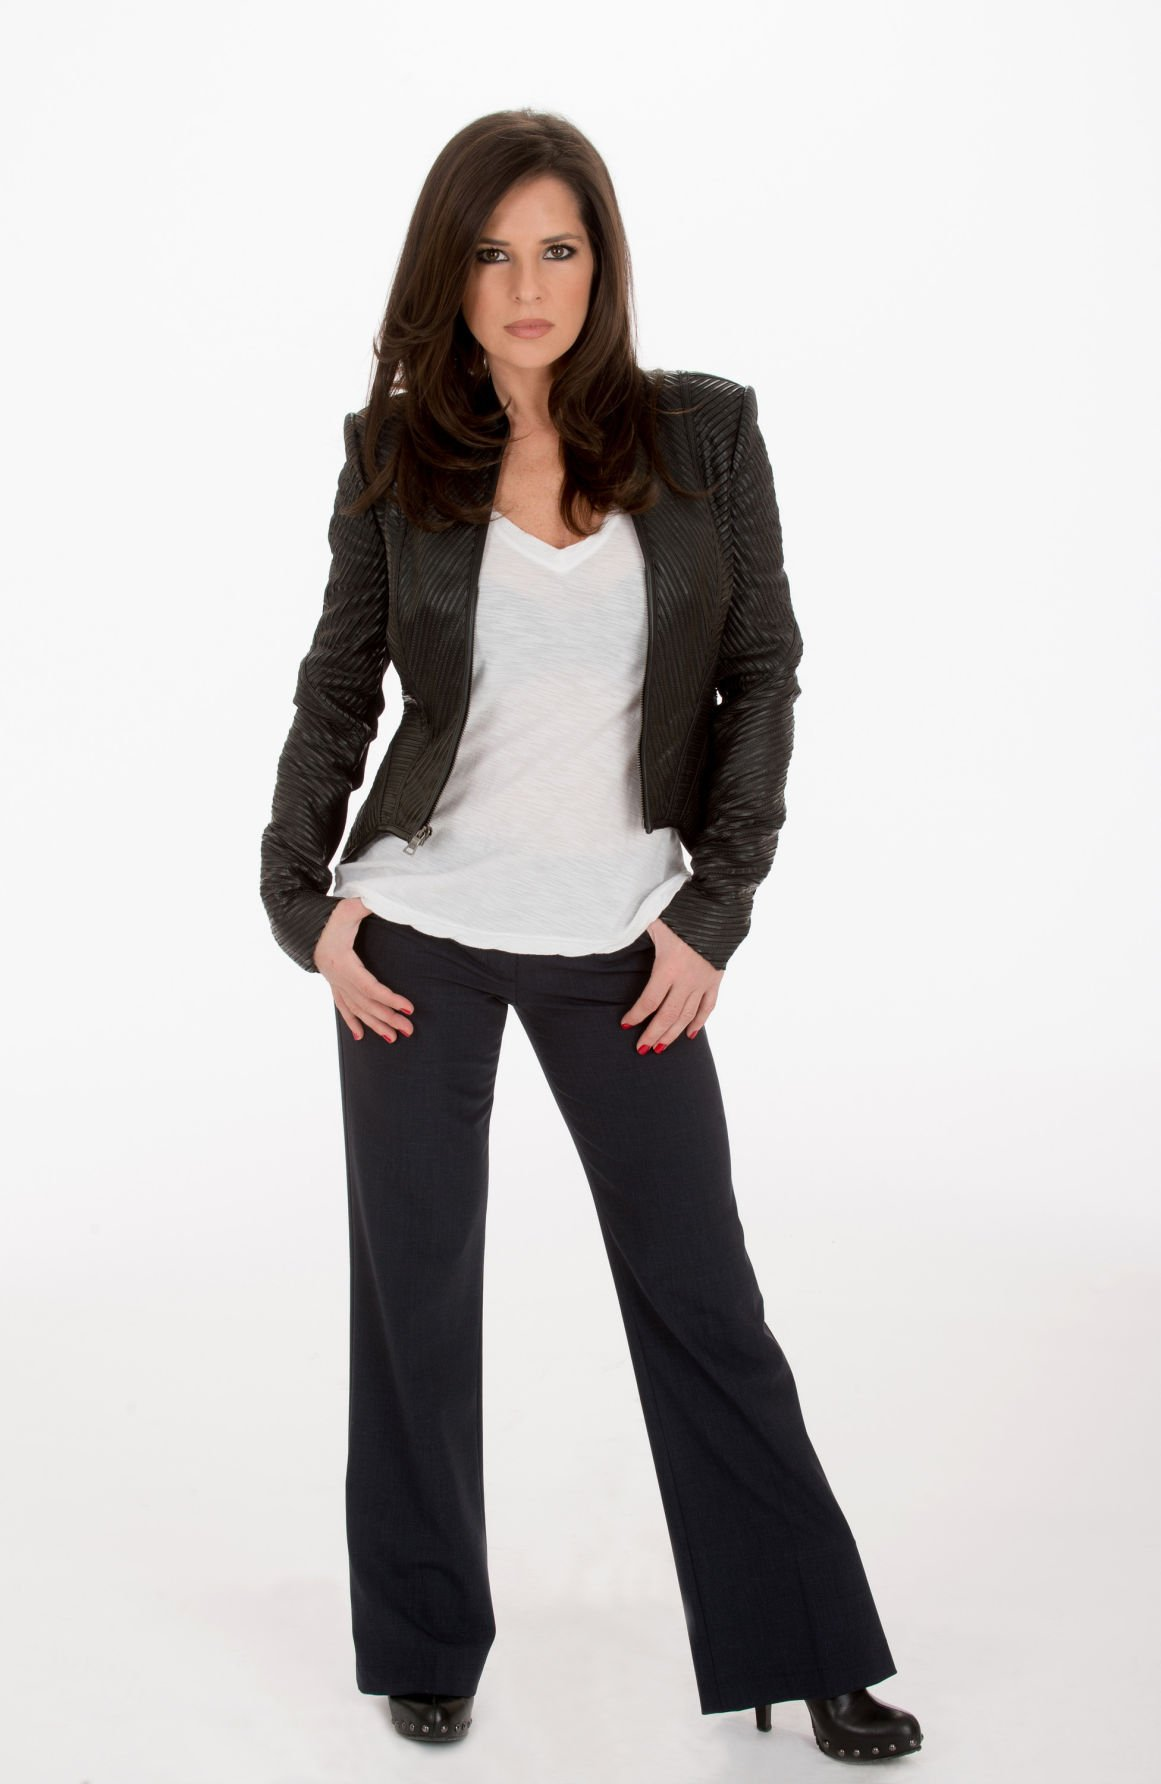 The First Kelly Monaco Says Dancing With The Stars